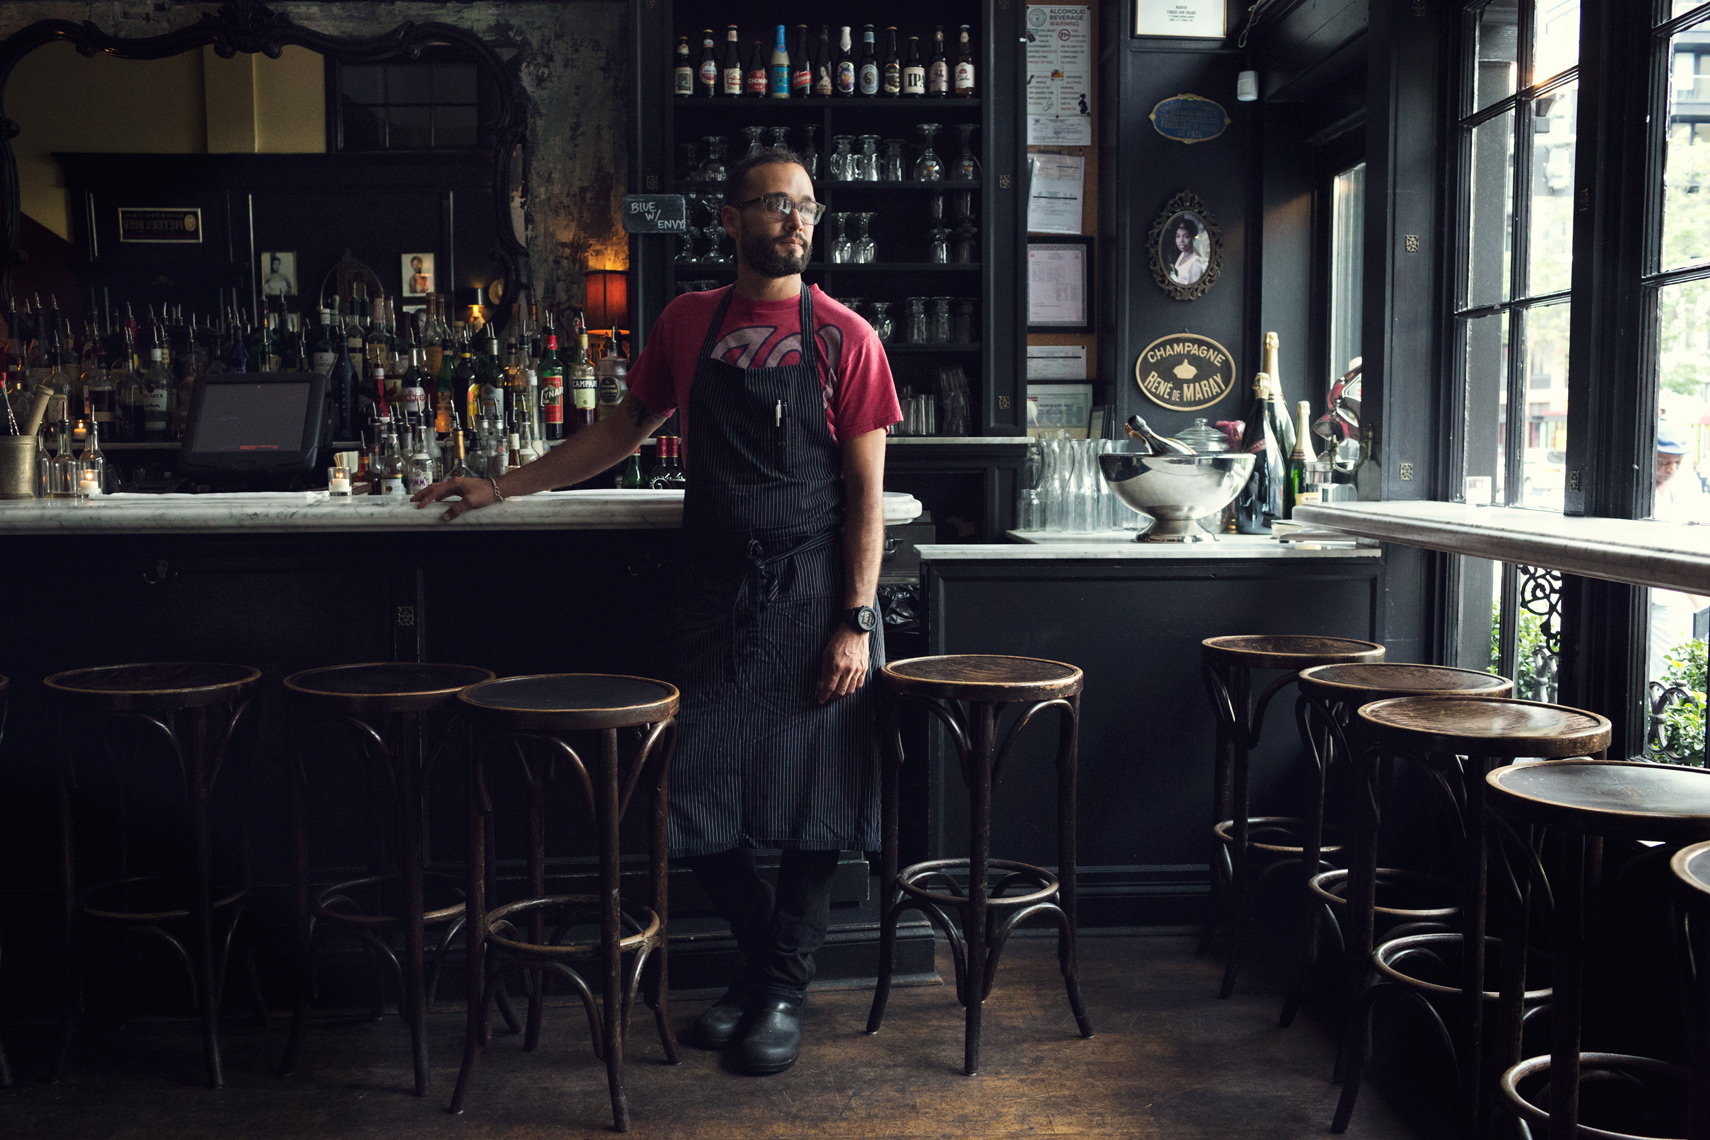 chef angel franco leaning on bar at marvin for washington dc portrait photography